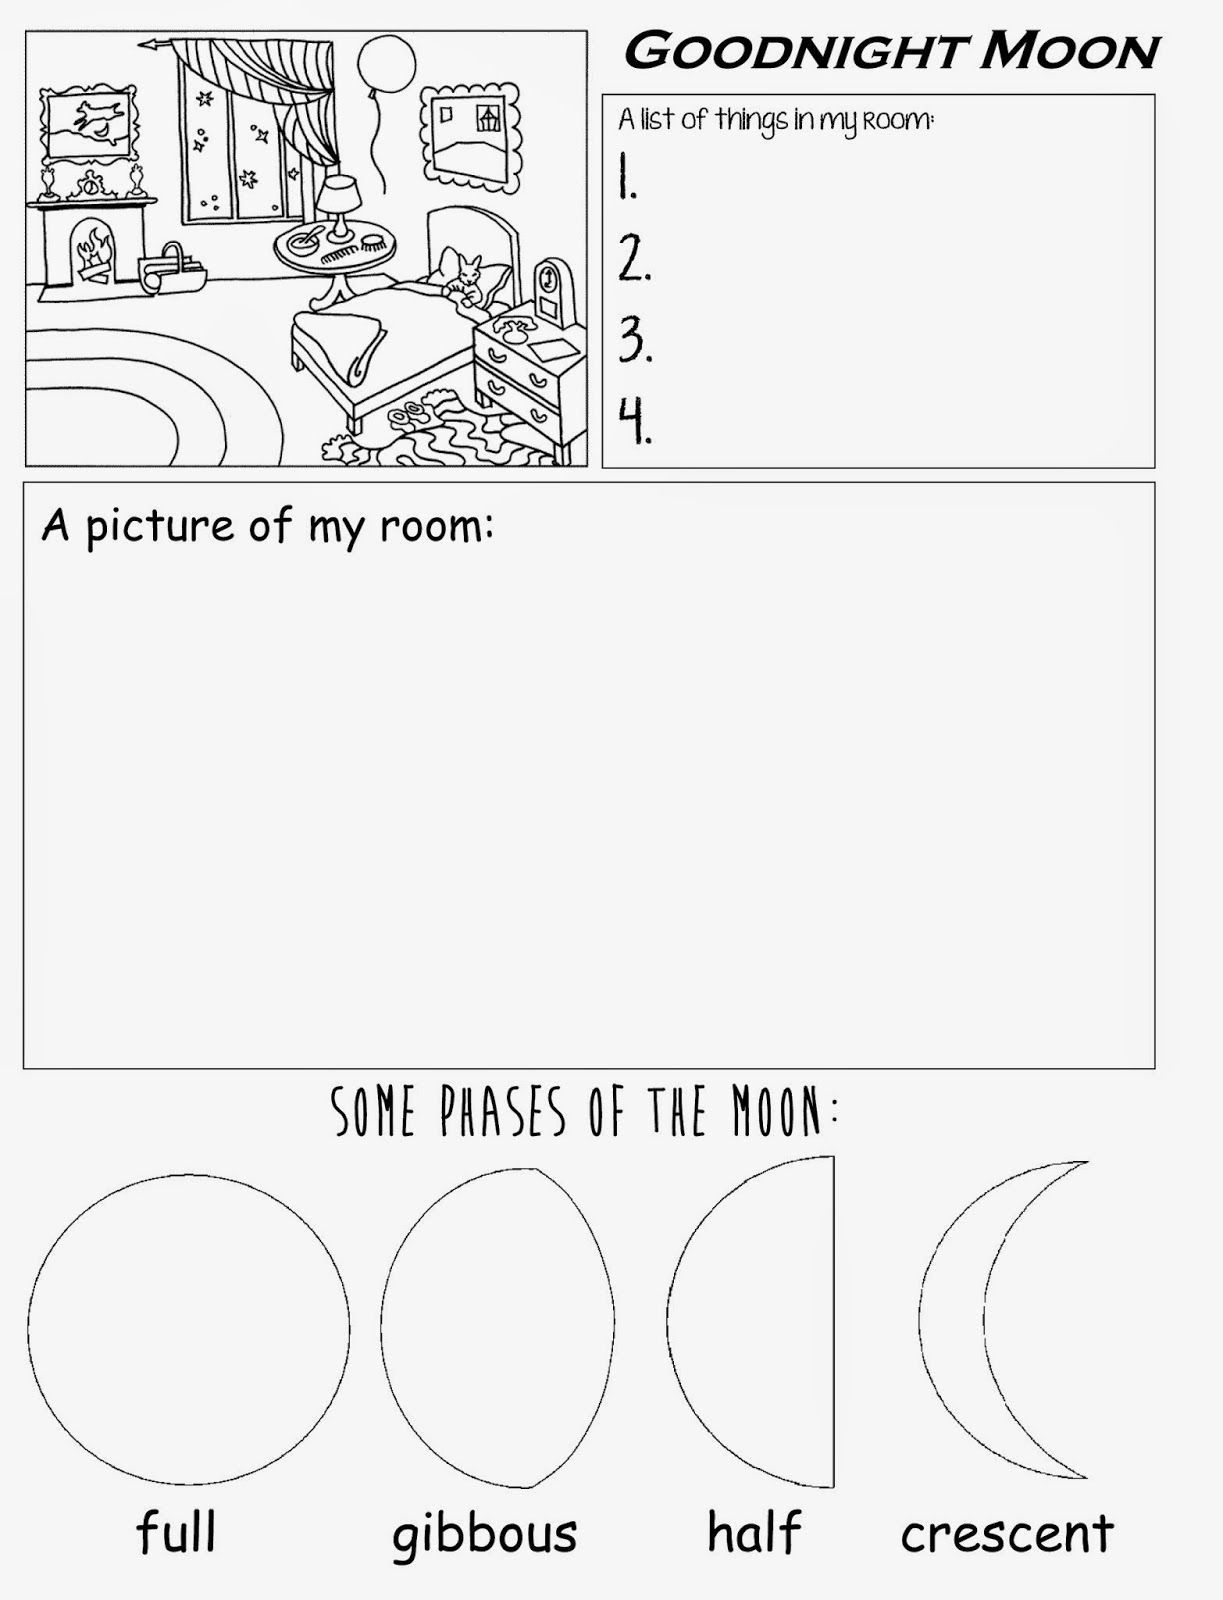 13 Crescent Shape Worksheets For Preschoolers